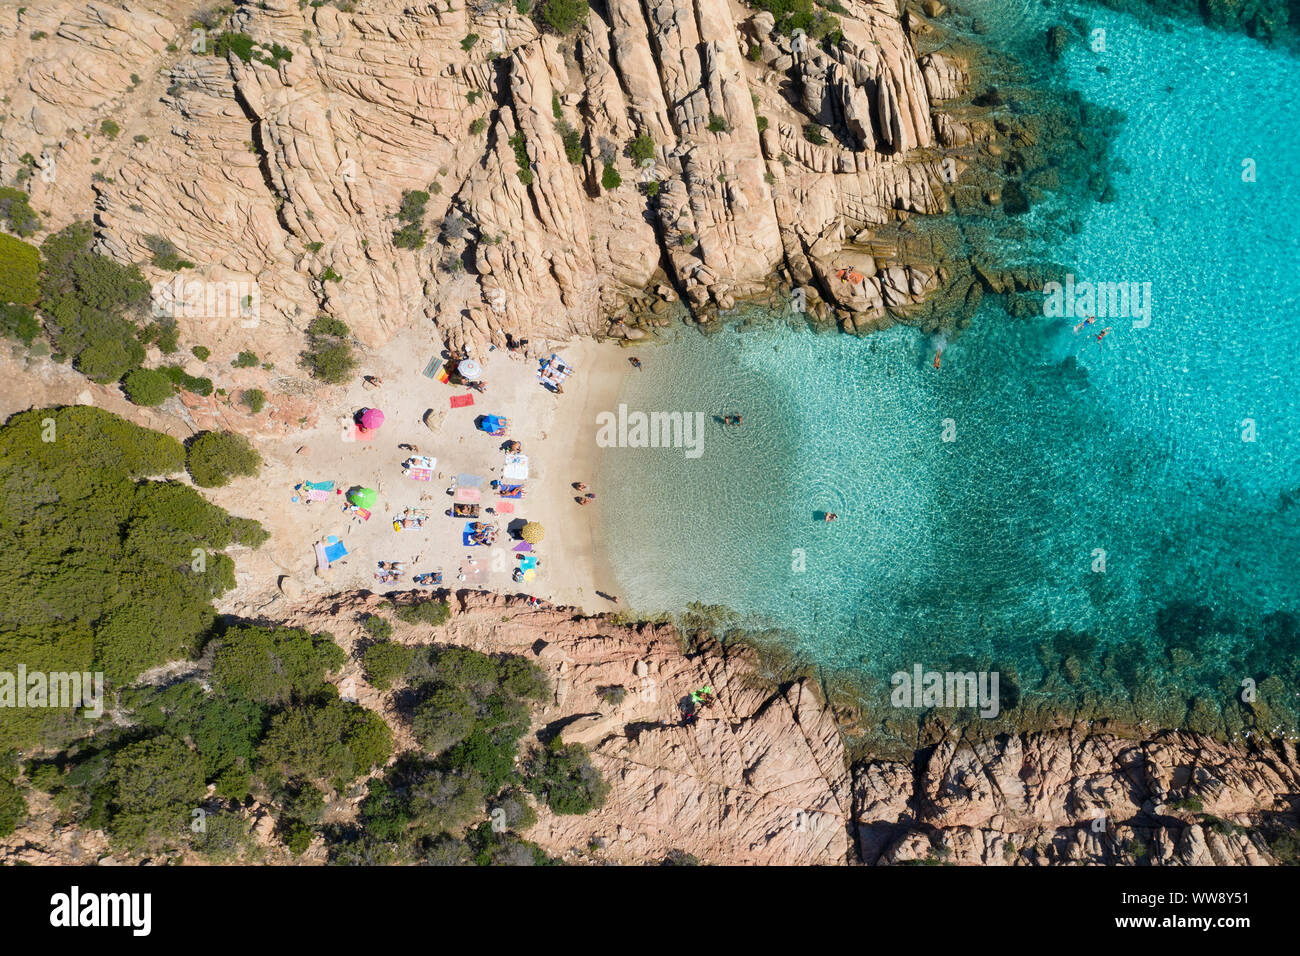 View from above, stunning aerial view of a small beach with beach umbrellas and people swimming in a turquoise clear water, Cala Coticcio, (Tahiti) Stock Photo